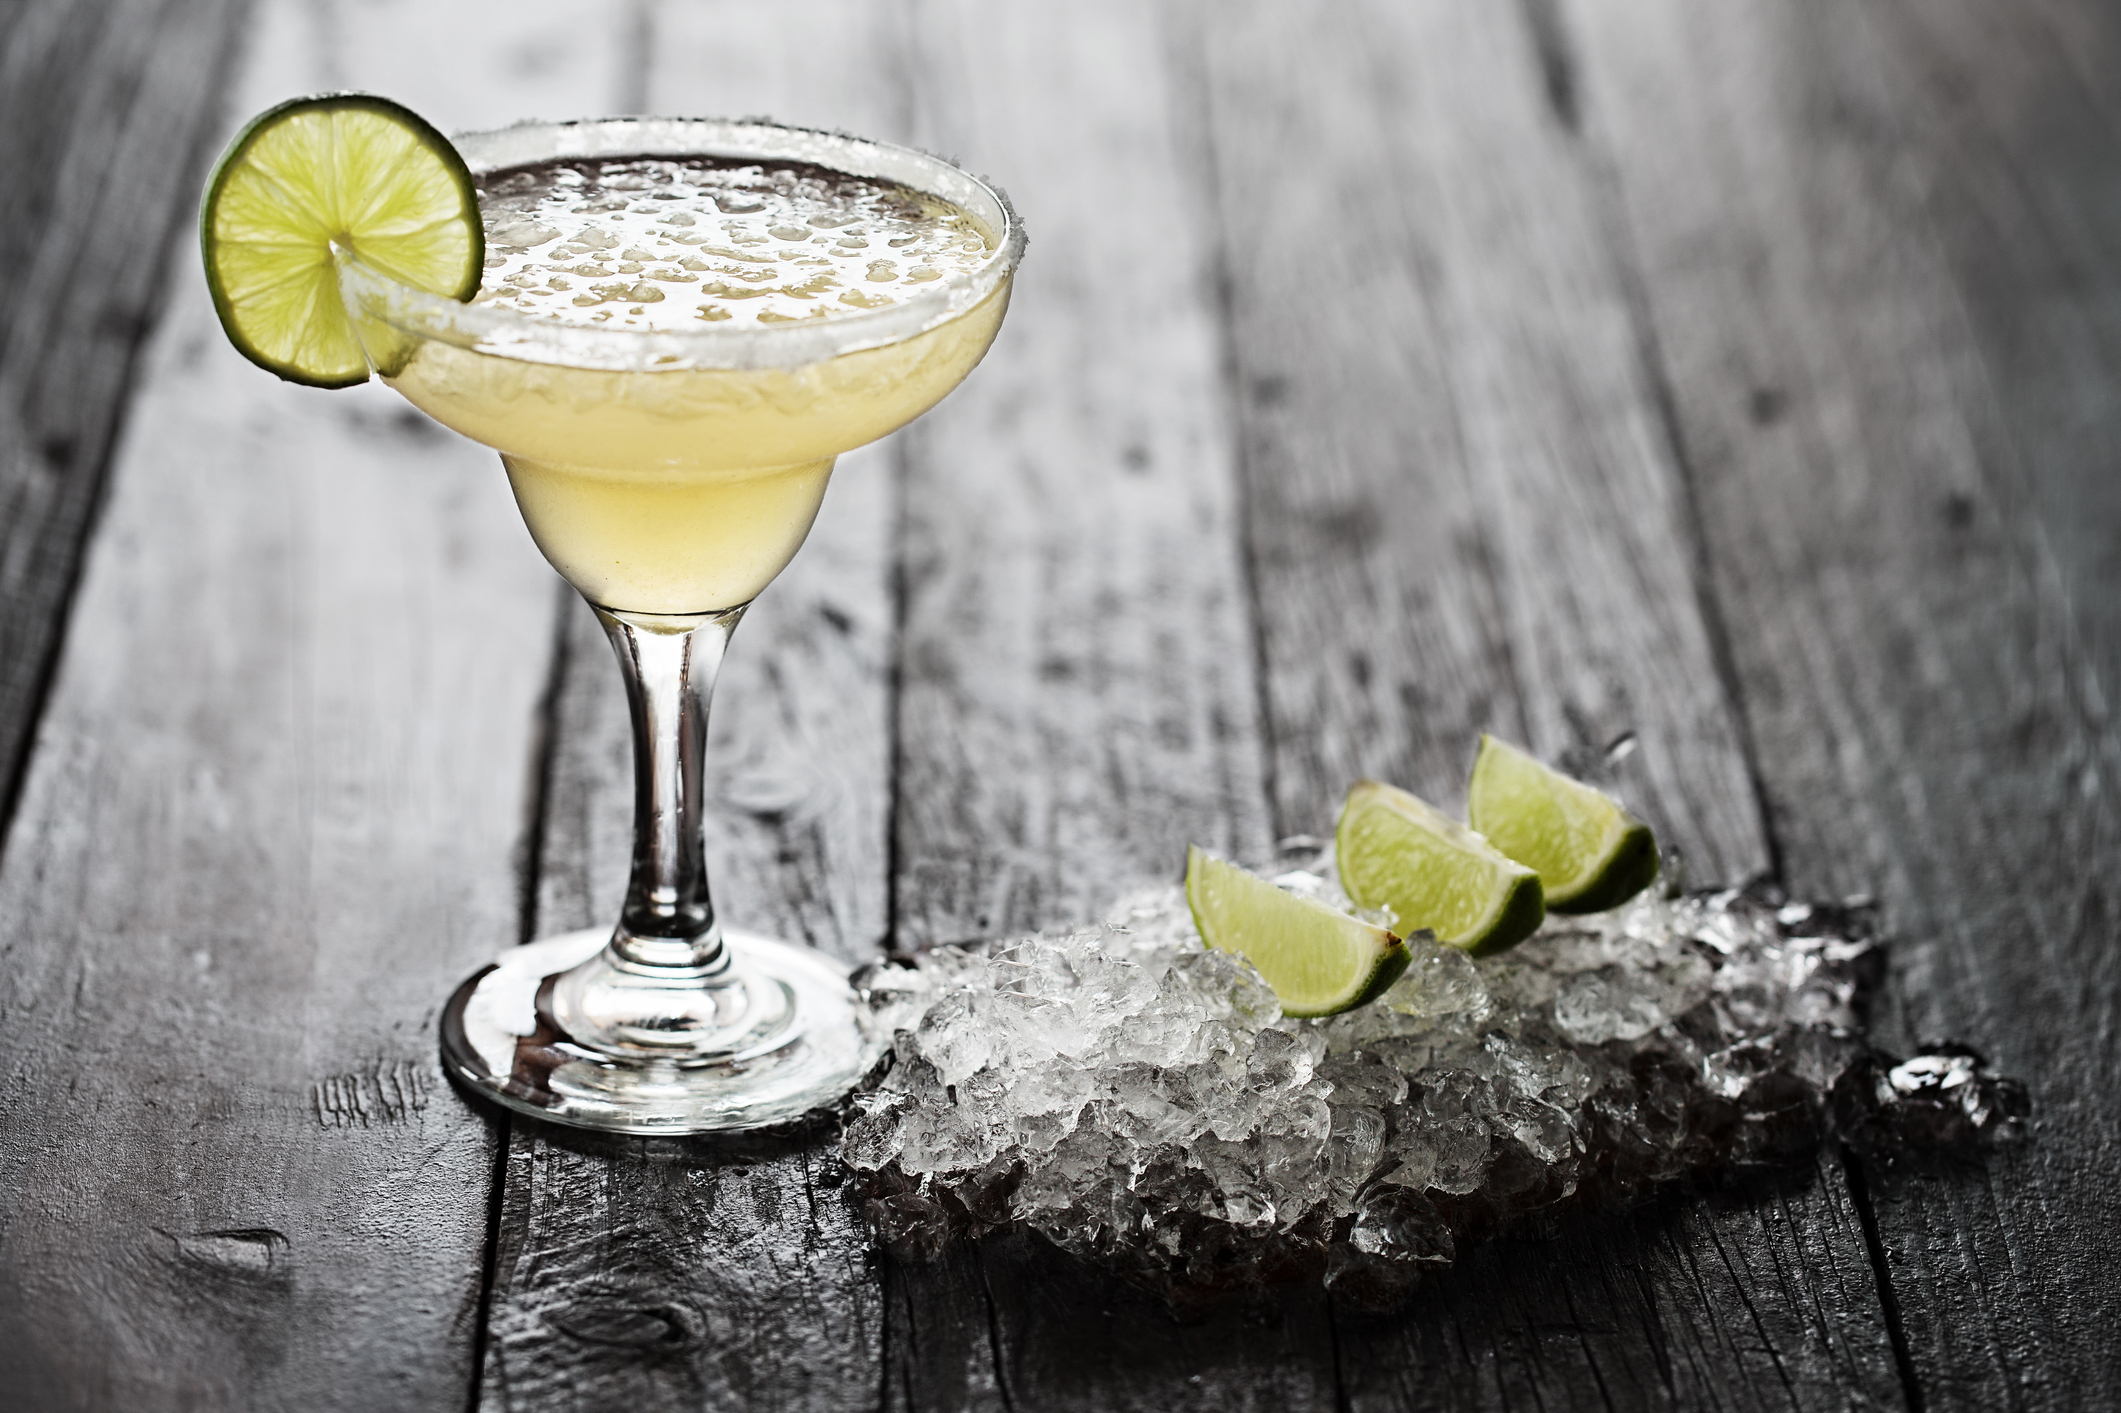 Where to drink craft tequila in Singapore